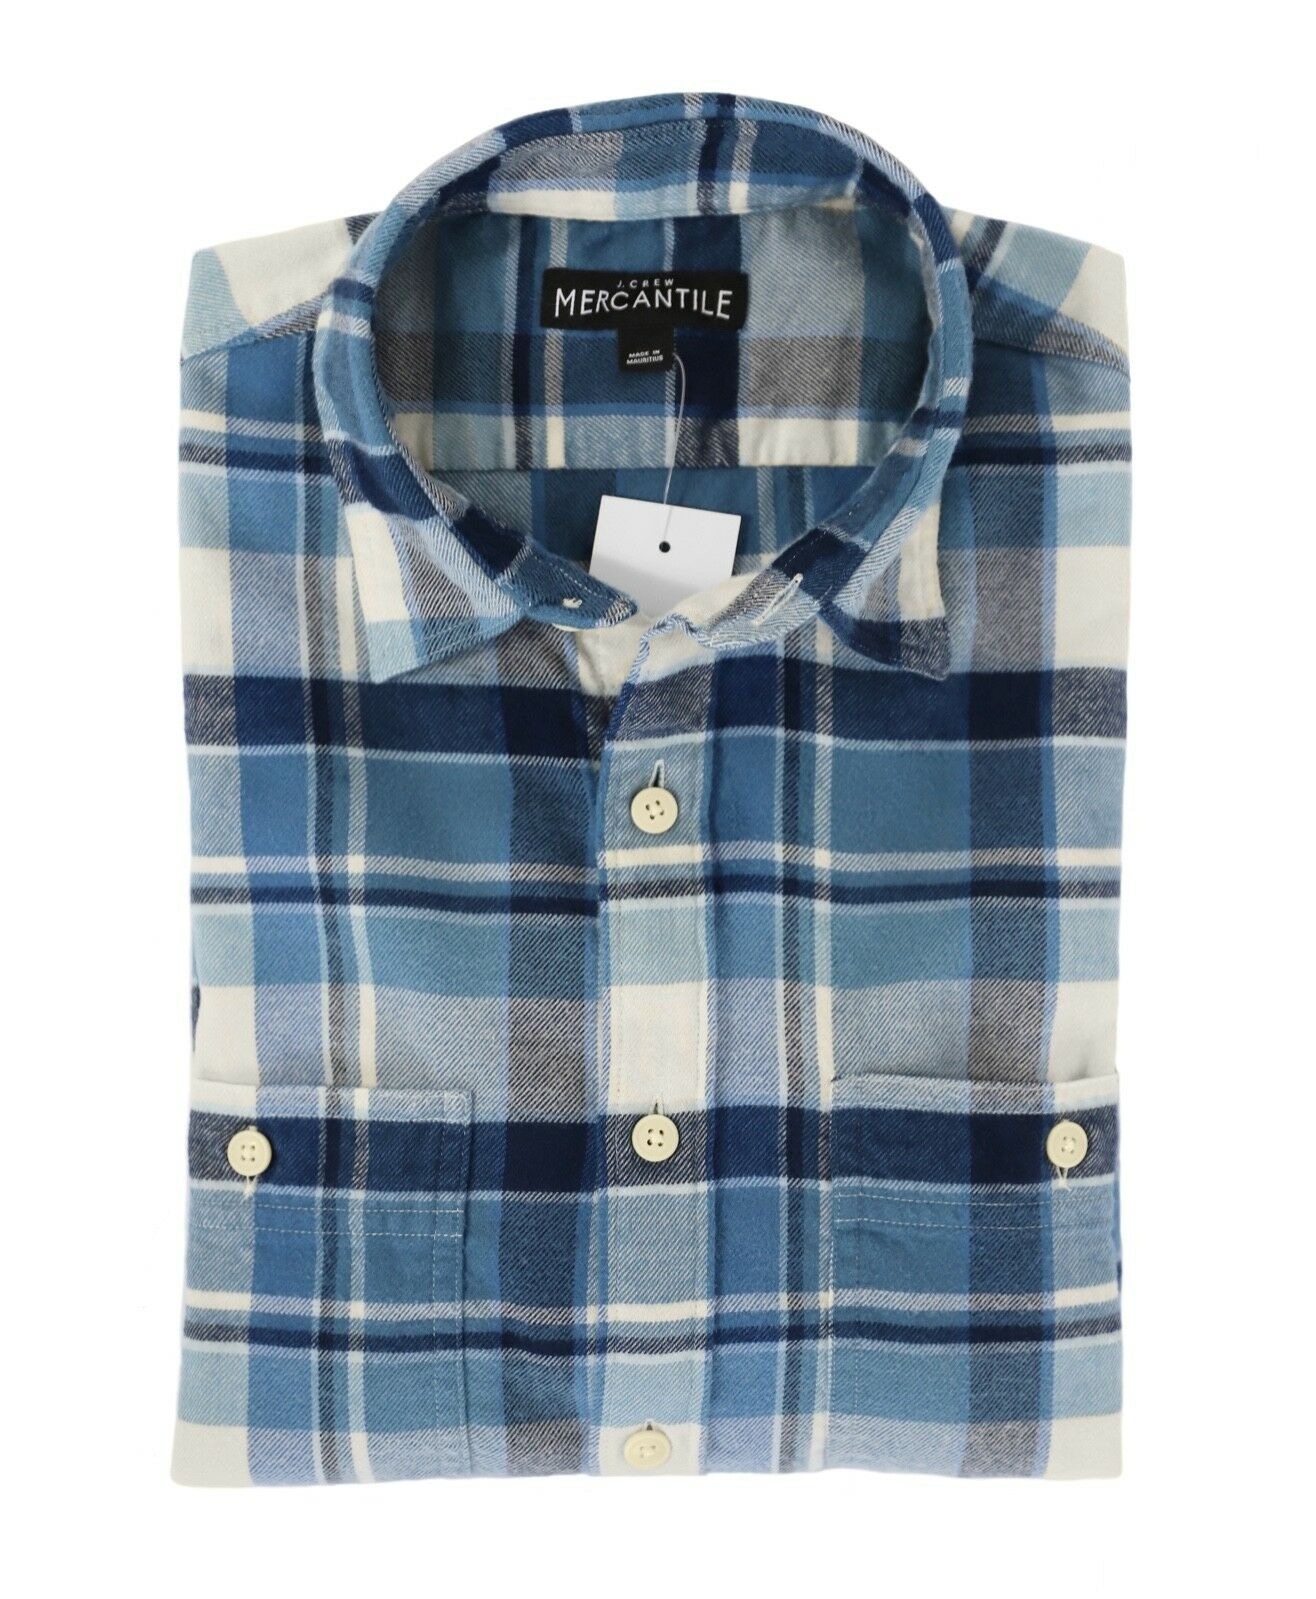 J.Crew Mercantile Mens L Slim Fit - NWT - bluee Plaid Flannel Shirt